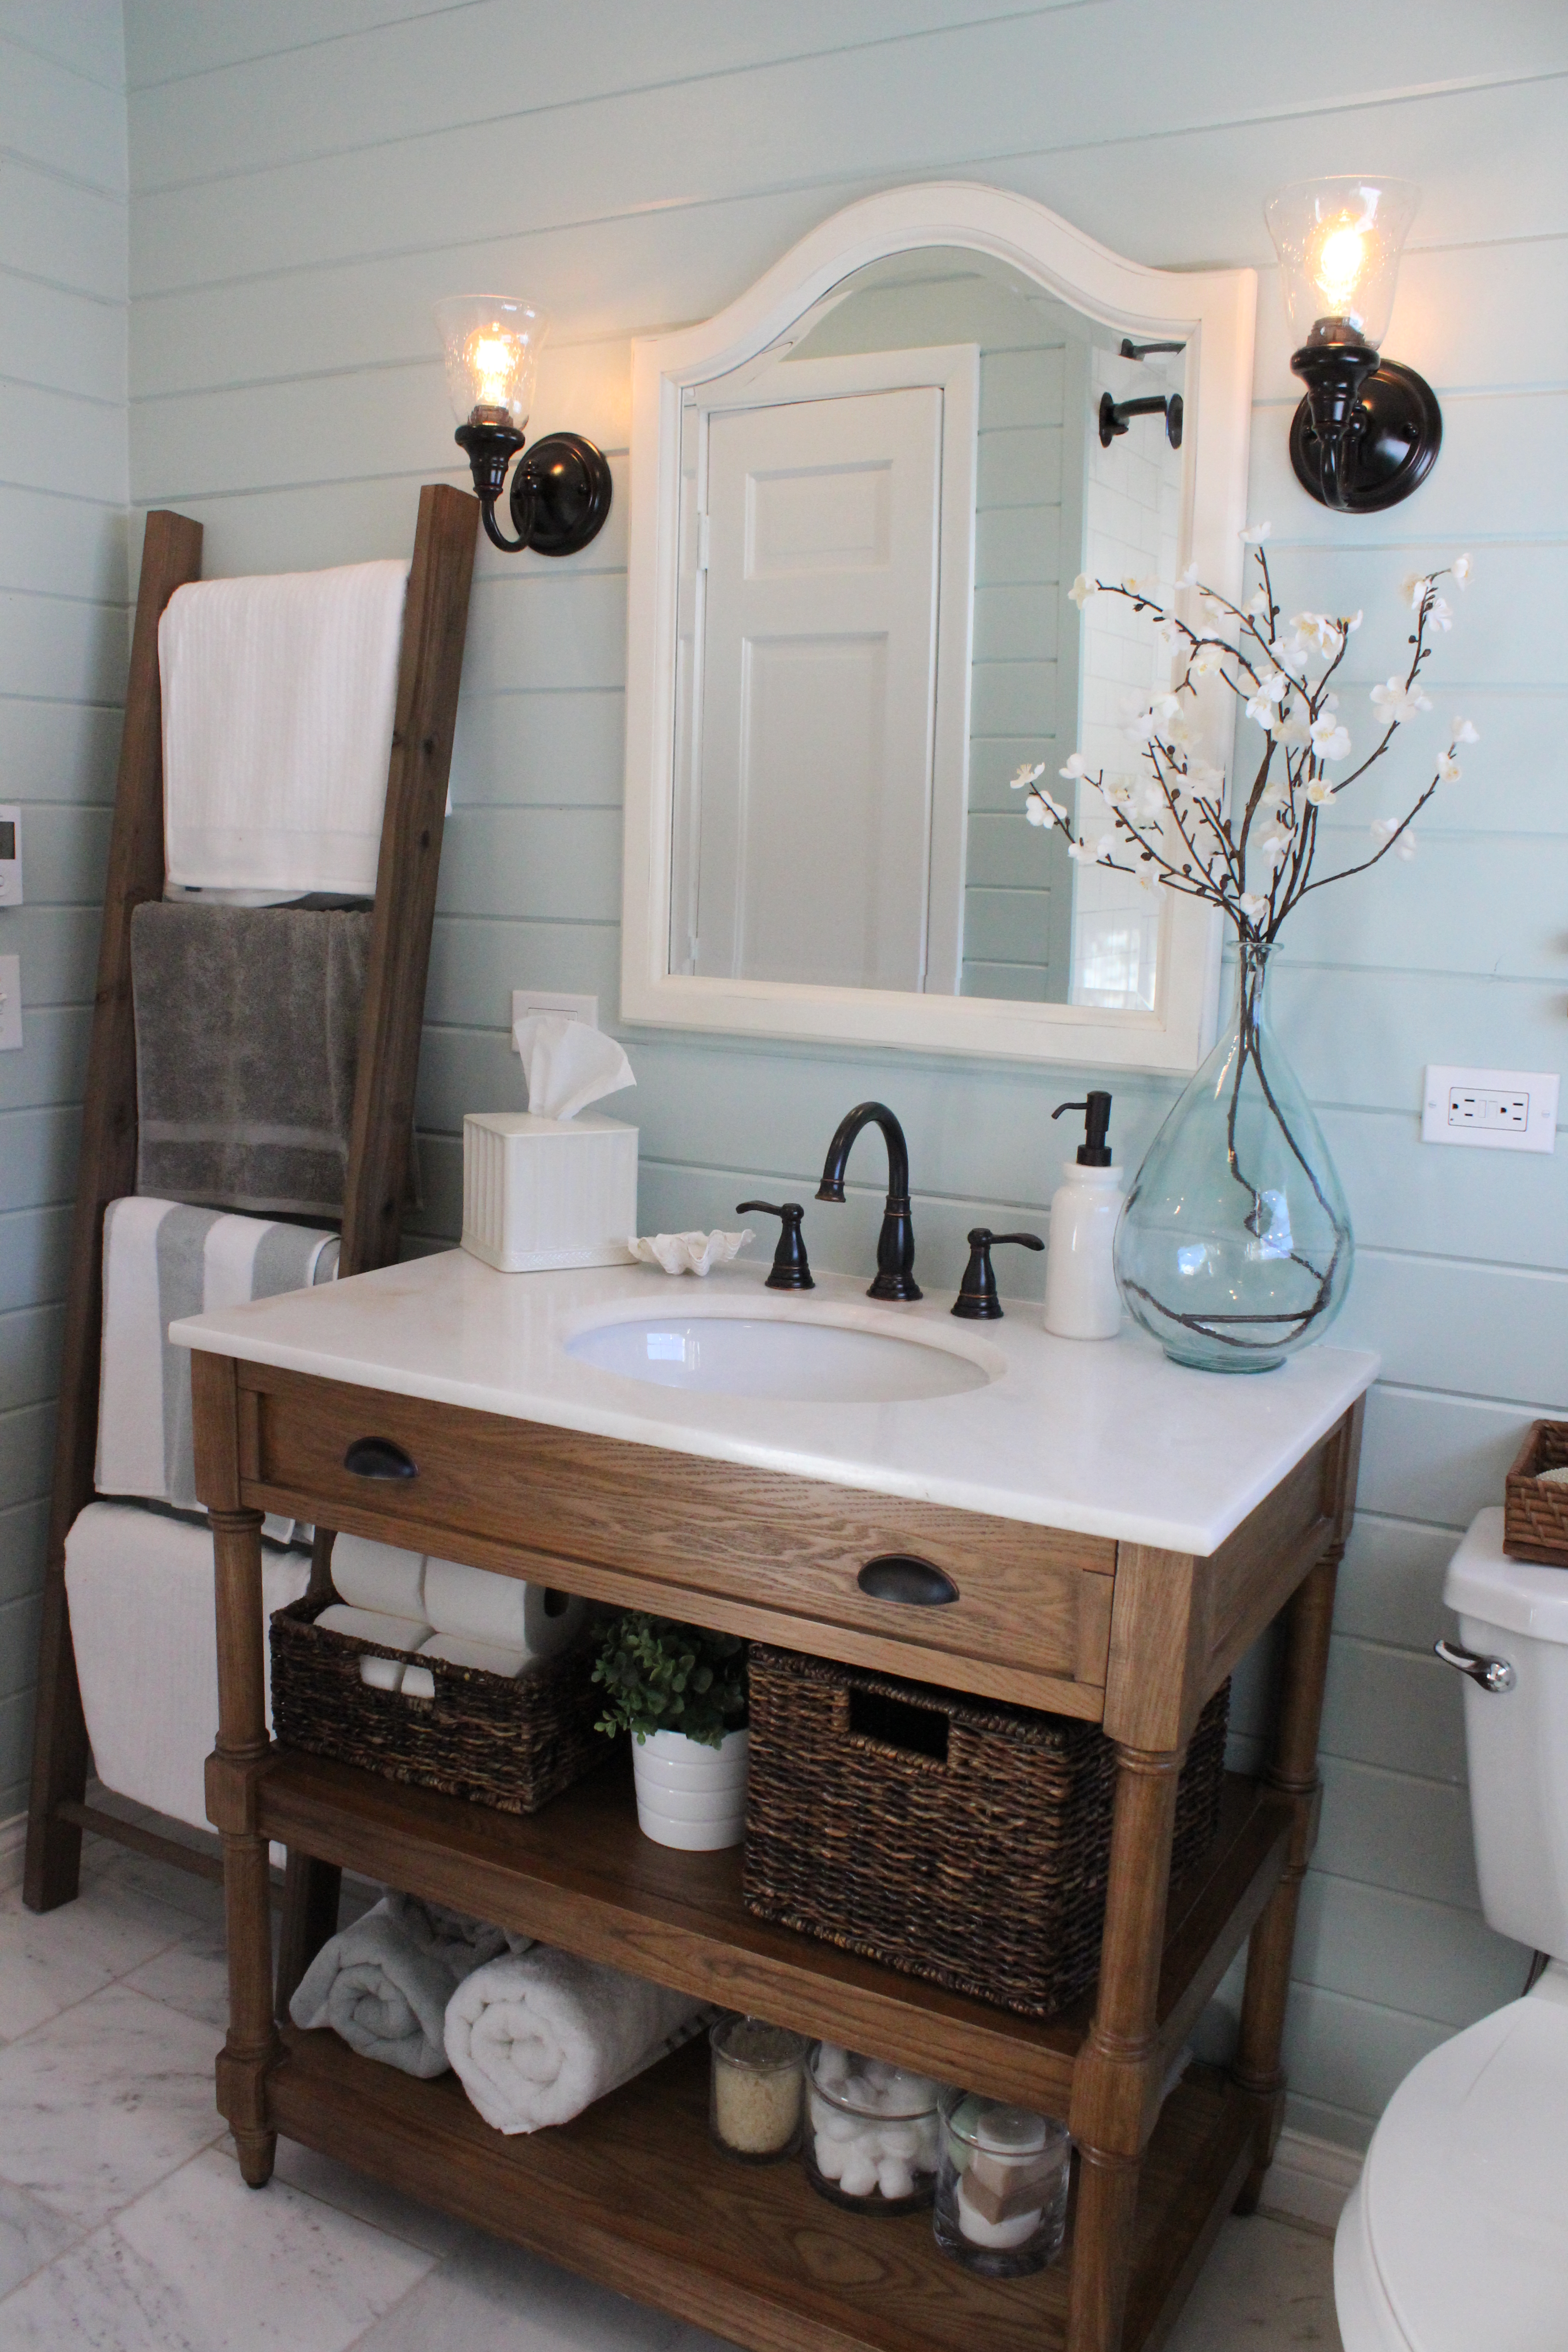 How to Build a Rustic Towel Ladder